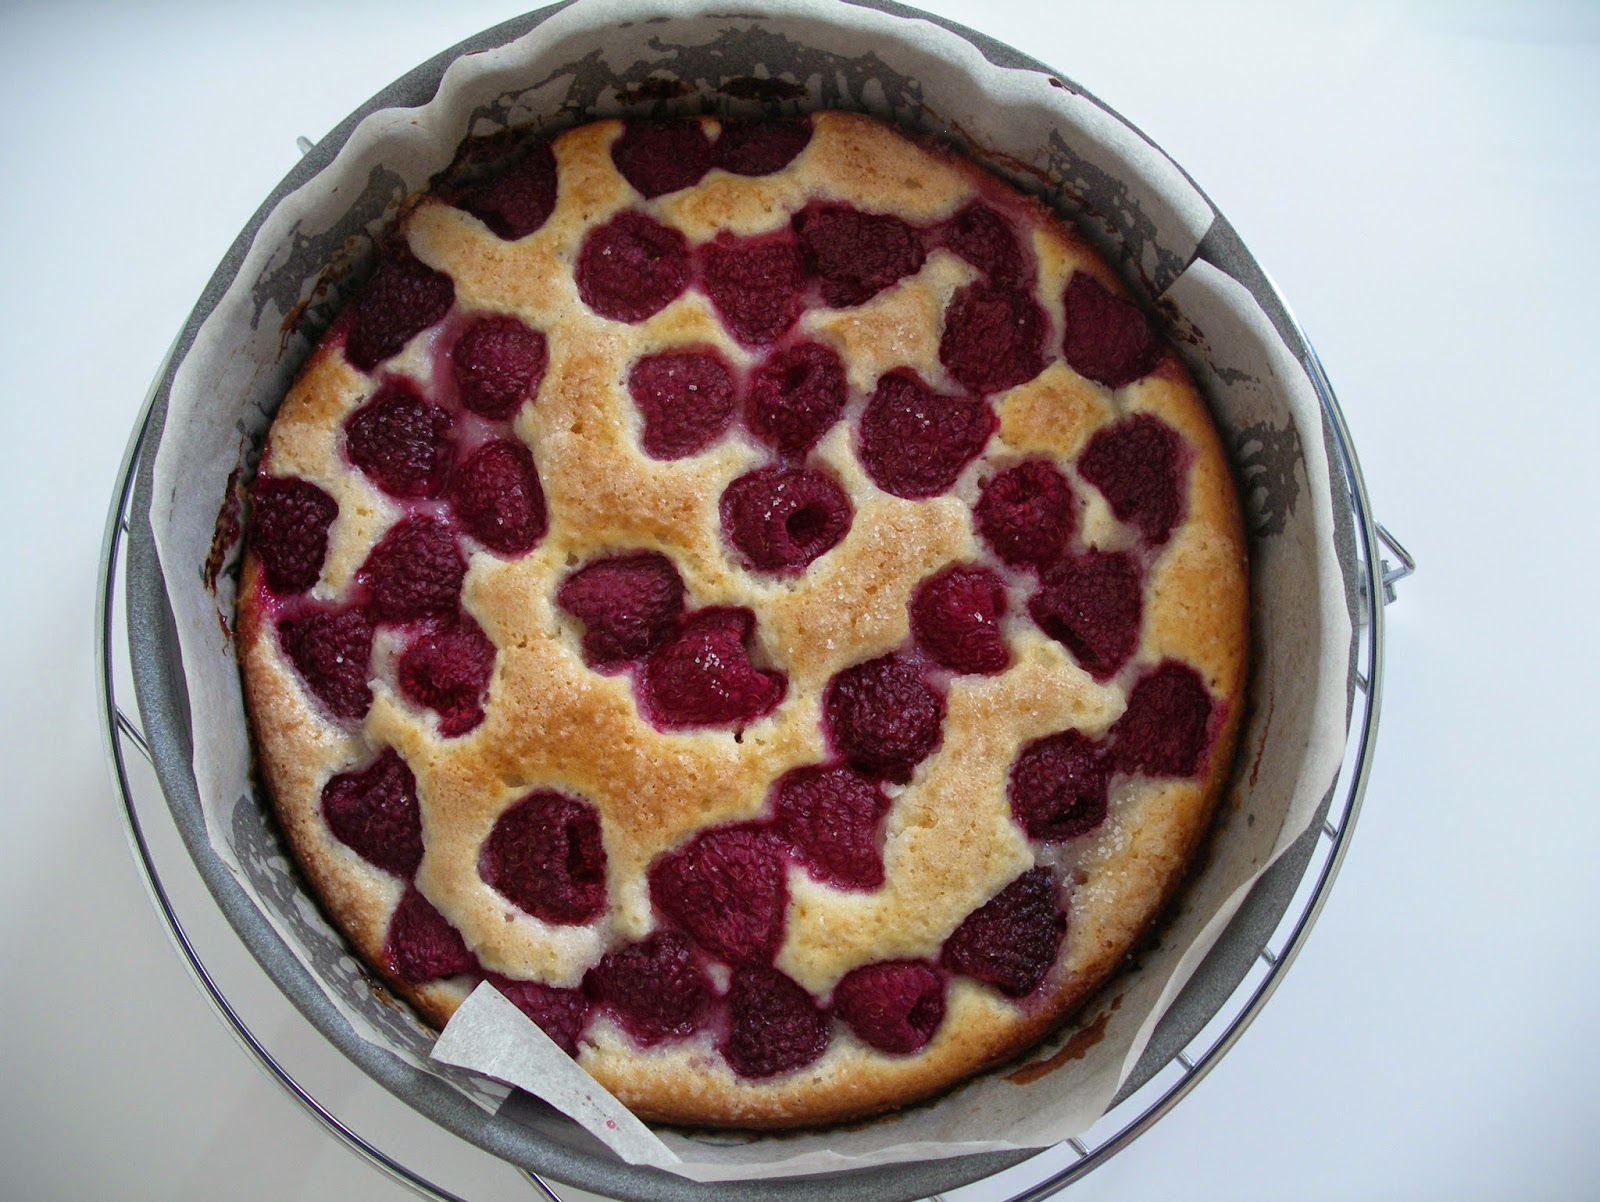 Raspberry laban cake out from the oven